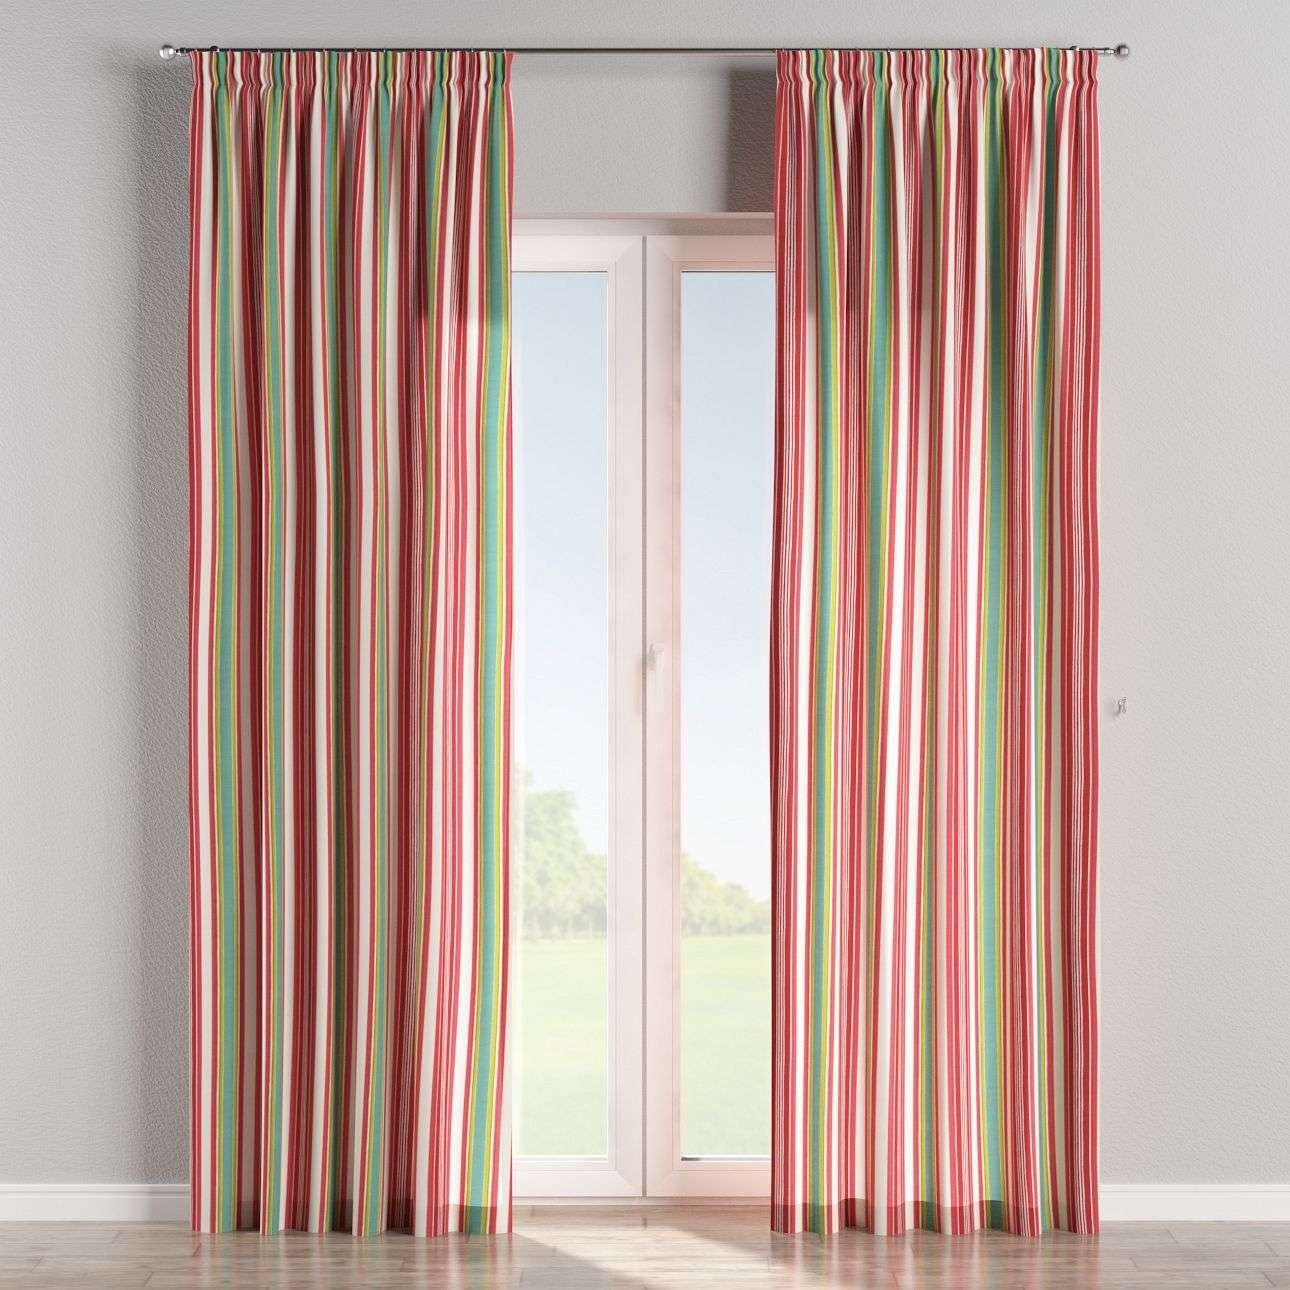 Pencil pleat curtains 130 x 260 cm (51 x 102 inch) in collection Londres, fabric: 122-01